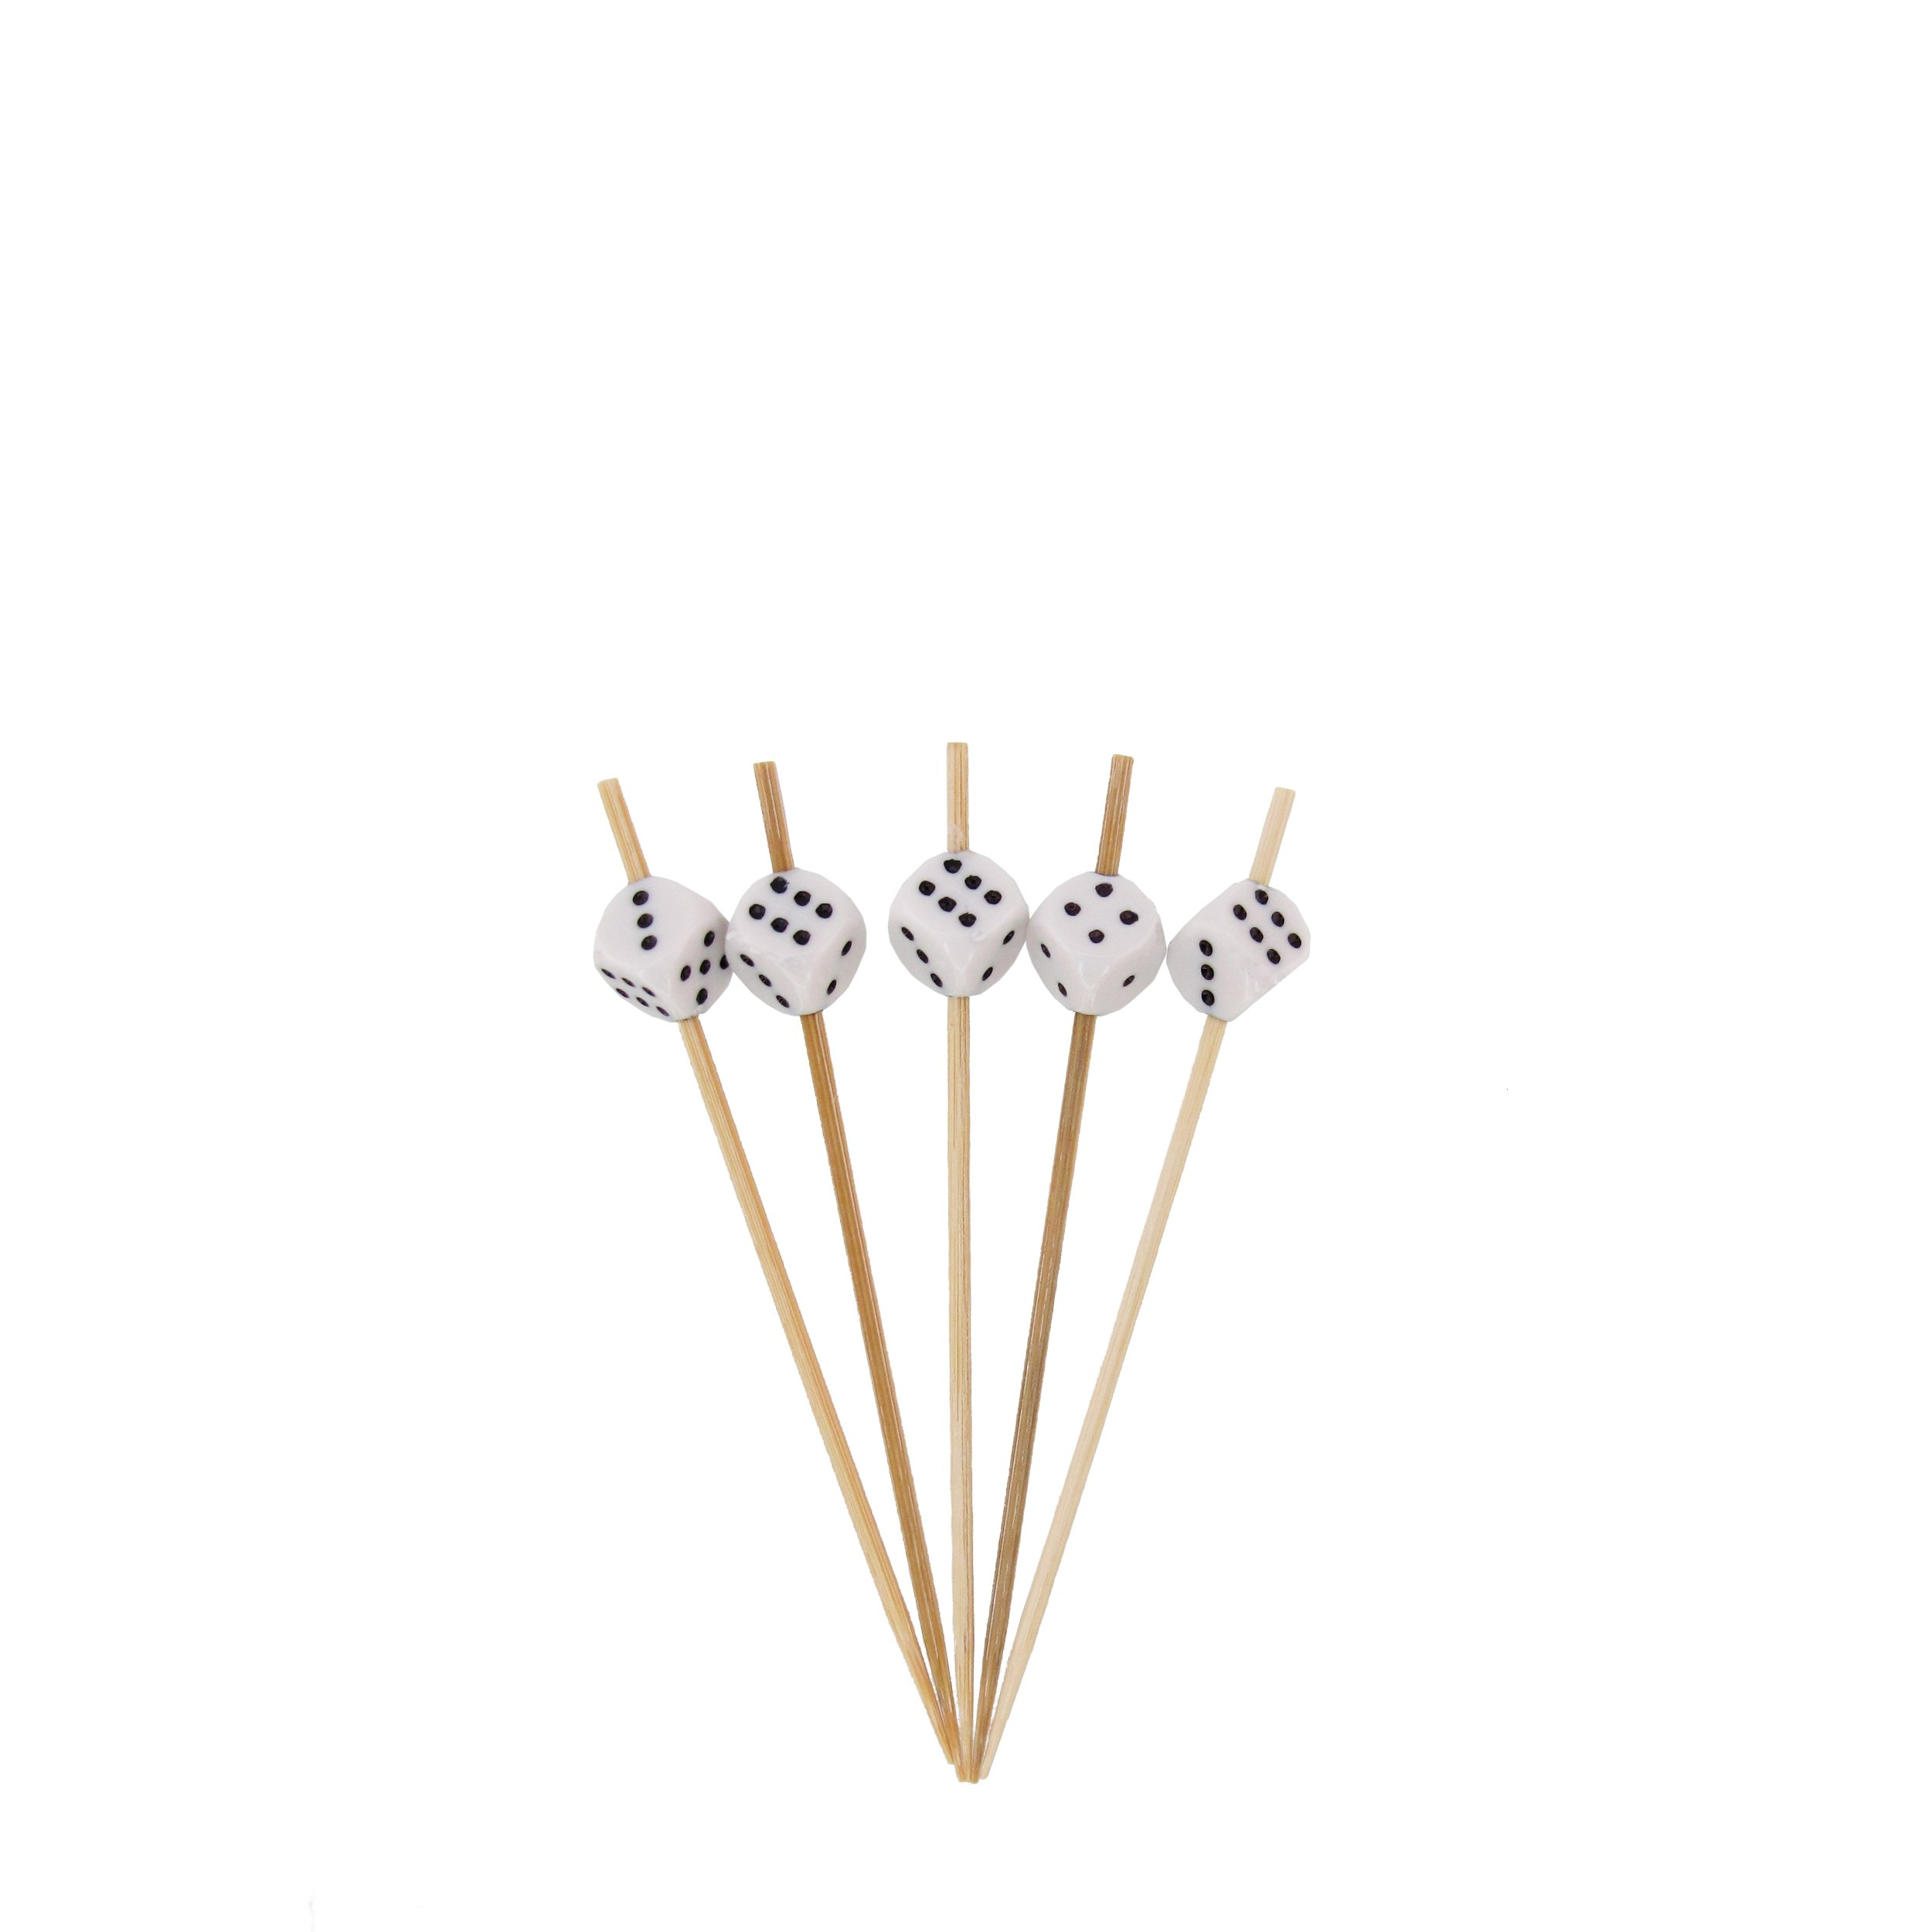 BambooMN 3.9'' Decorative Dice Party End Bamboo Cocktail Fruit Sandwich Picks Skewers for Catered Events, Holiday's, Restaurants or Buffets Party Supplies, White, 100 Pieces